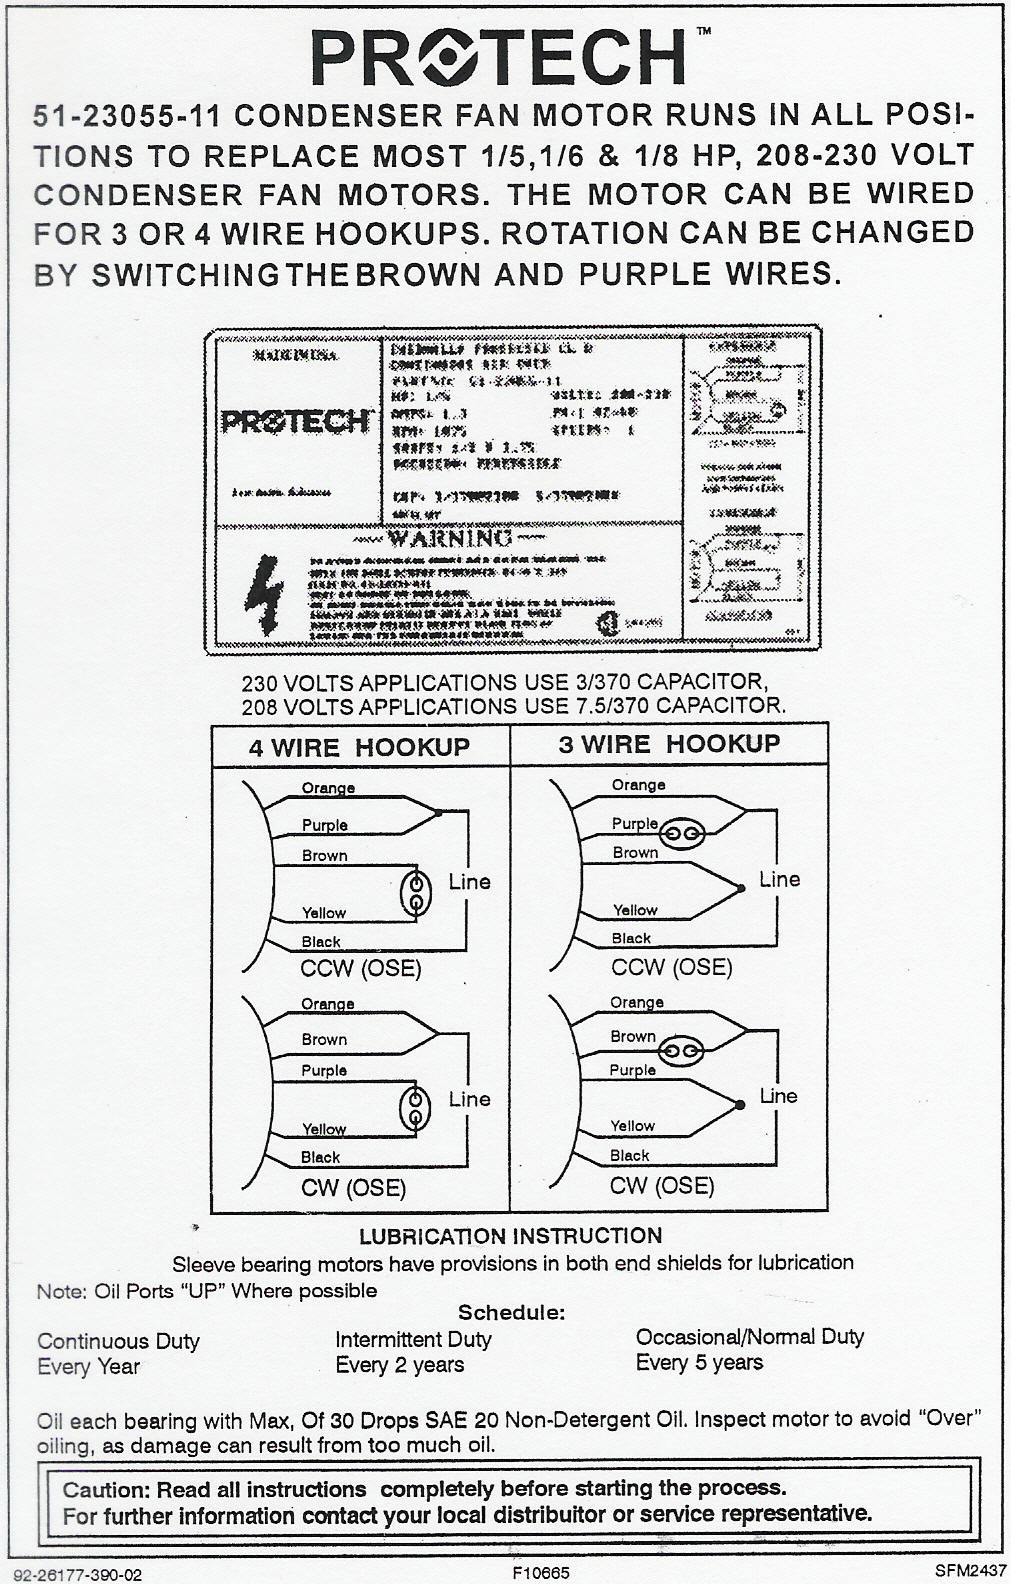 Dayton Electric Motor Cw Ccw Wiring Diagram | Wiring Liry on